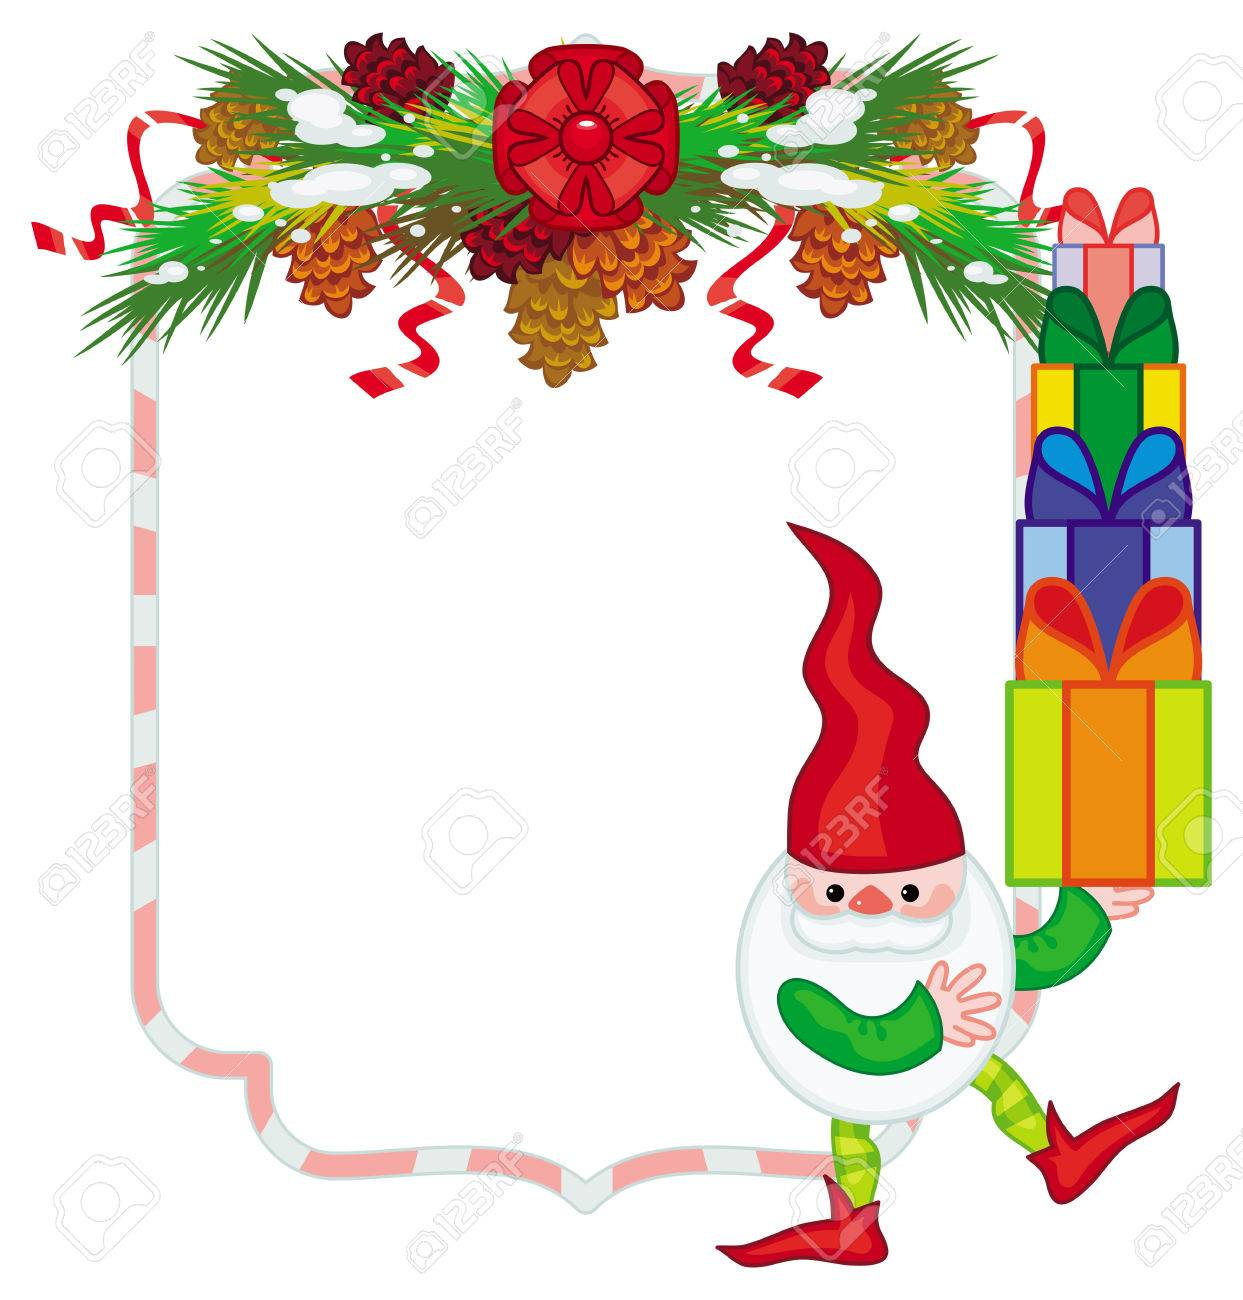 holiday frame with decorations and christmas elf copy space rh 123rf com free christmas clipart transparent background